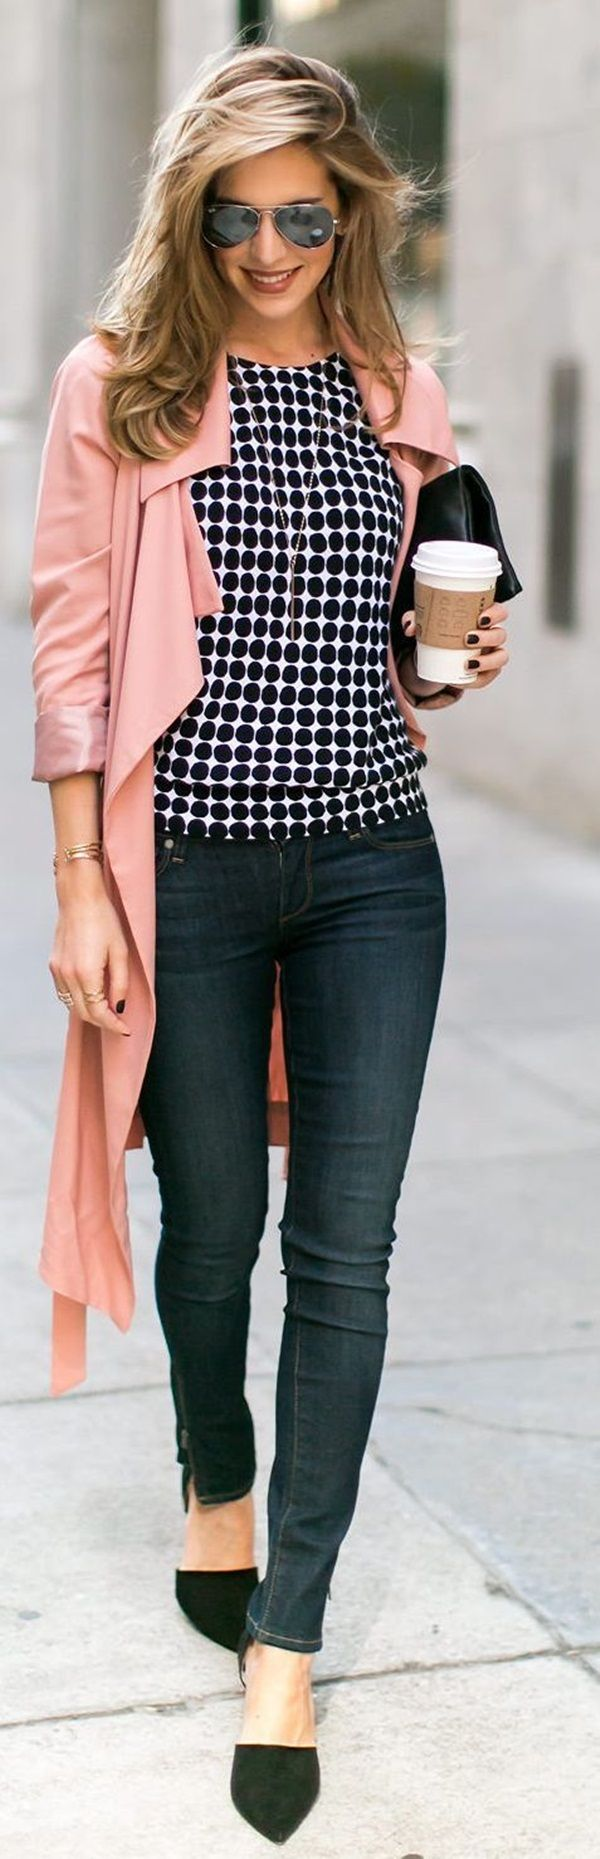 Not crazy about the color of the sweater, but like the drape of it and the overall look of this outfit.